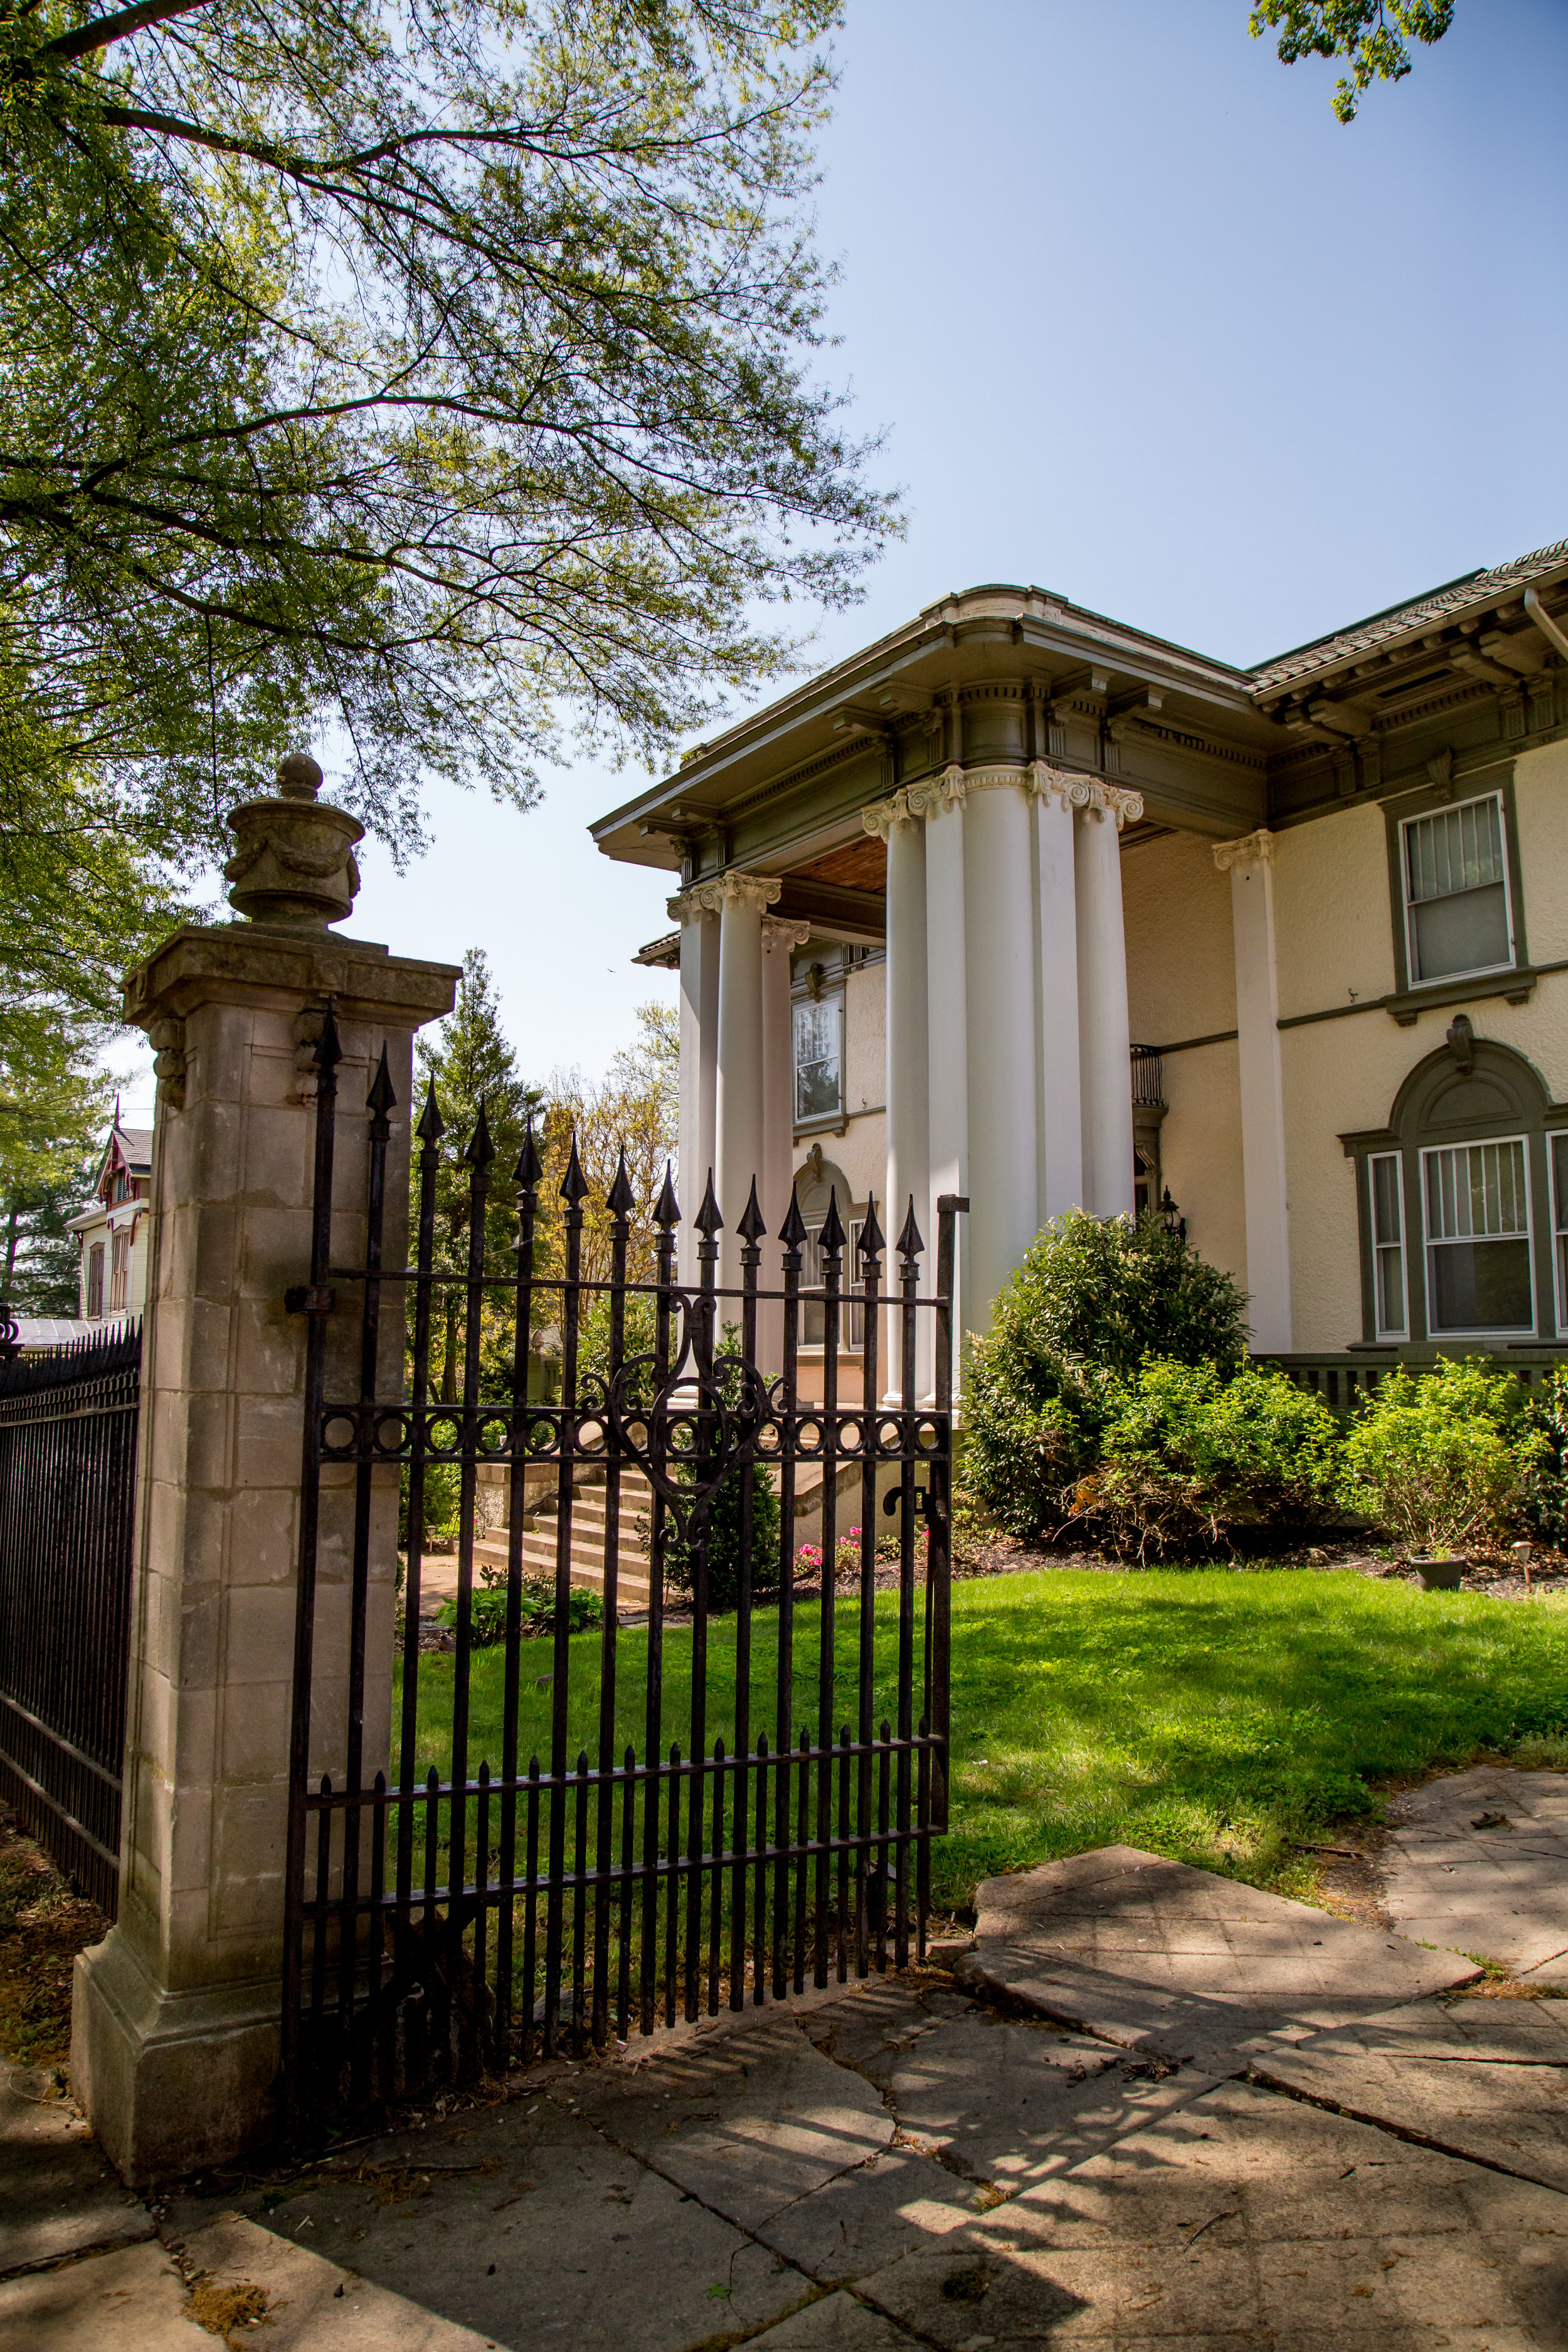 James Gilliam, Sr. Home, built 1912 Designed by architect Stanhope Johnson, the house occupies two lots in Garland Hill and combines elements of Georgian and Spanish styles.